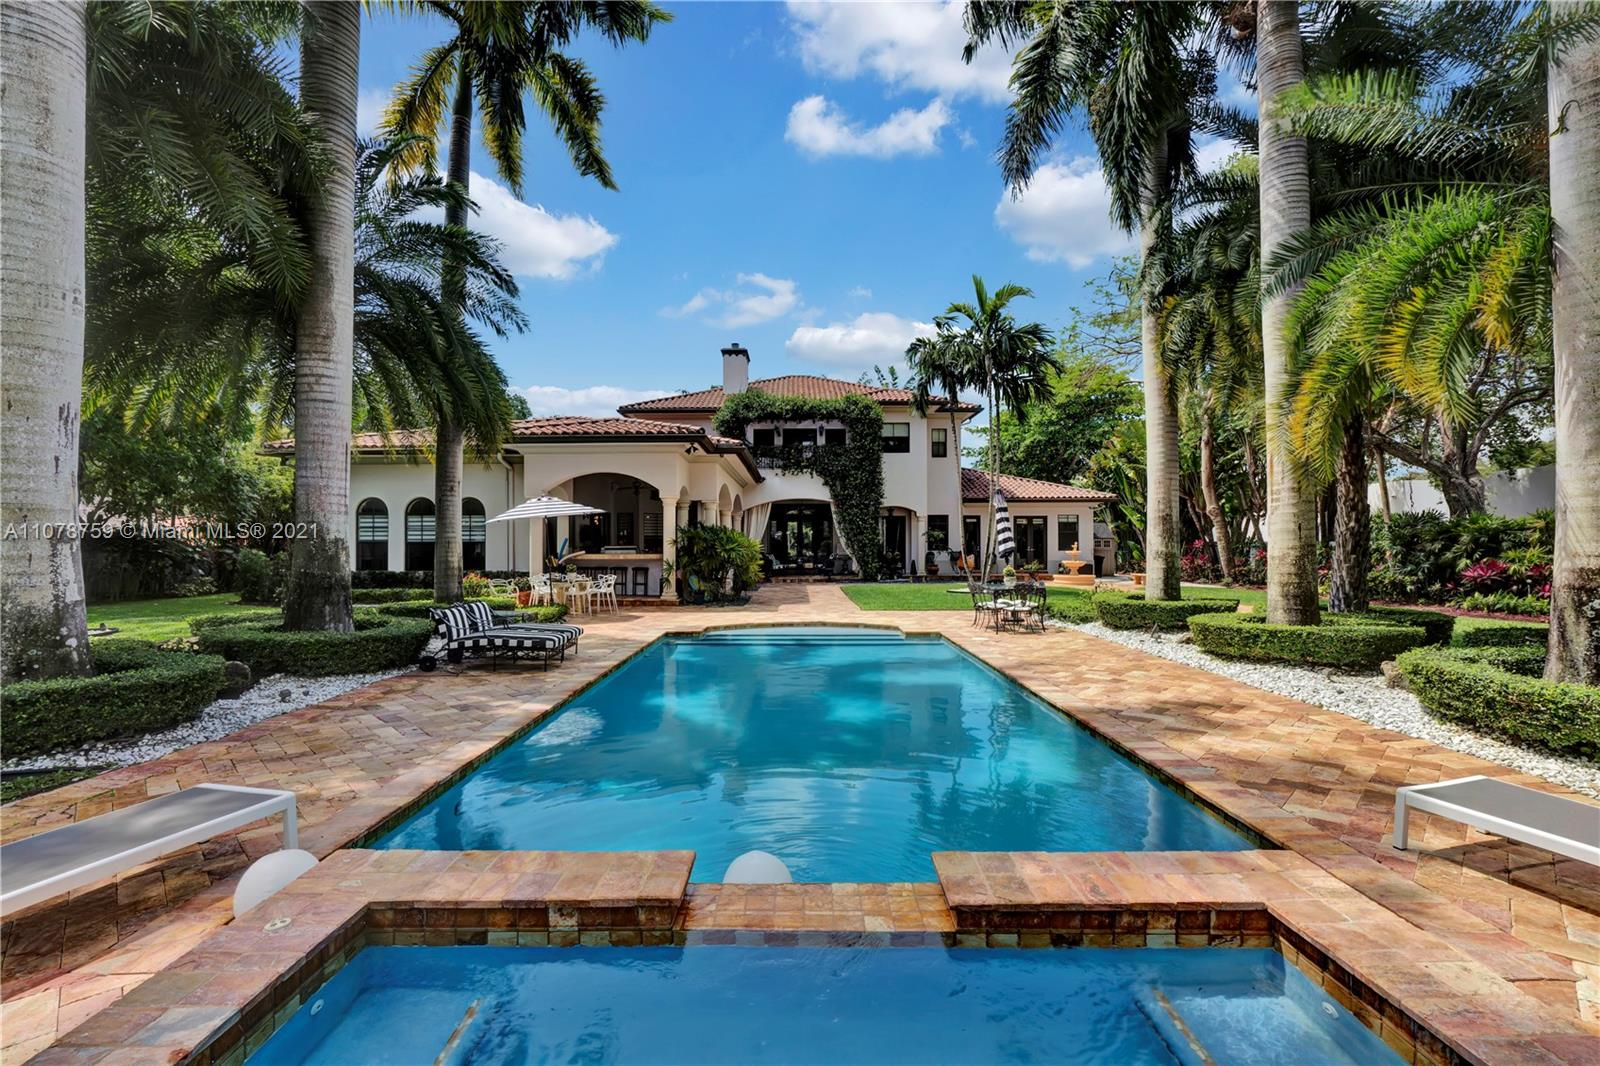 This elegant and sophisticated European Transitional masterpiece sits on a rare deep acre lot. This beautiful Pinecrest home is surrounded by a beautifully manicured botanical garden, created by Jungle B's landscapers from Homestead. You will find that this 6 Bed. /5.1 Bath, home utilizes its 6,613 sq. ft. of living area in a very useful and elegant manner. Every bit of space serves a valuable purpose, and no living area goes to waste. This home is great for your family to enjoy, and fantastic for you to entertain your guests. Indoor garage for 3 cars. This property also comes with a brand new stand-by home generator that will power your entire home for days. Walking distance to all three A-Rated Palmetto schools, less than a ten-minute drive to most top private schools in the area.